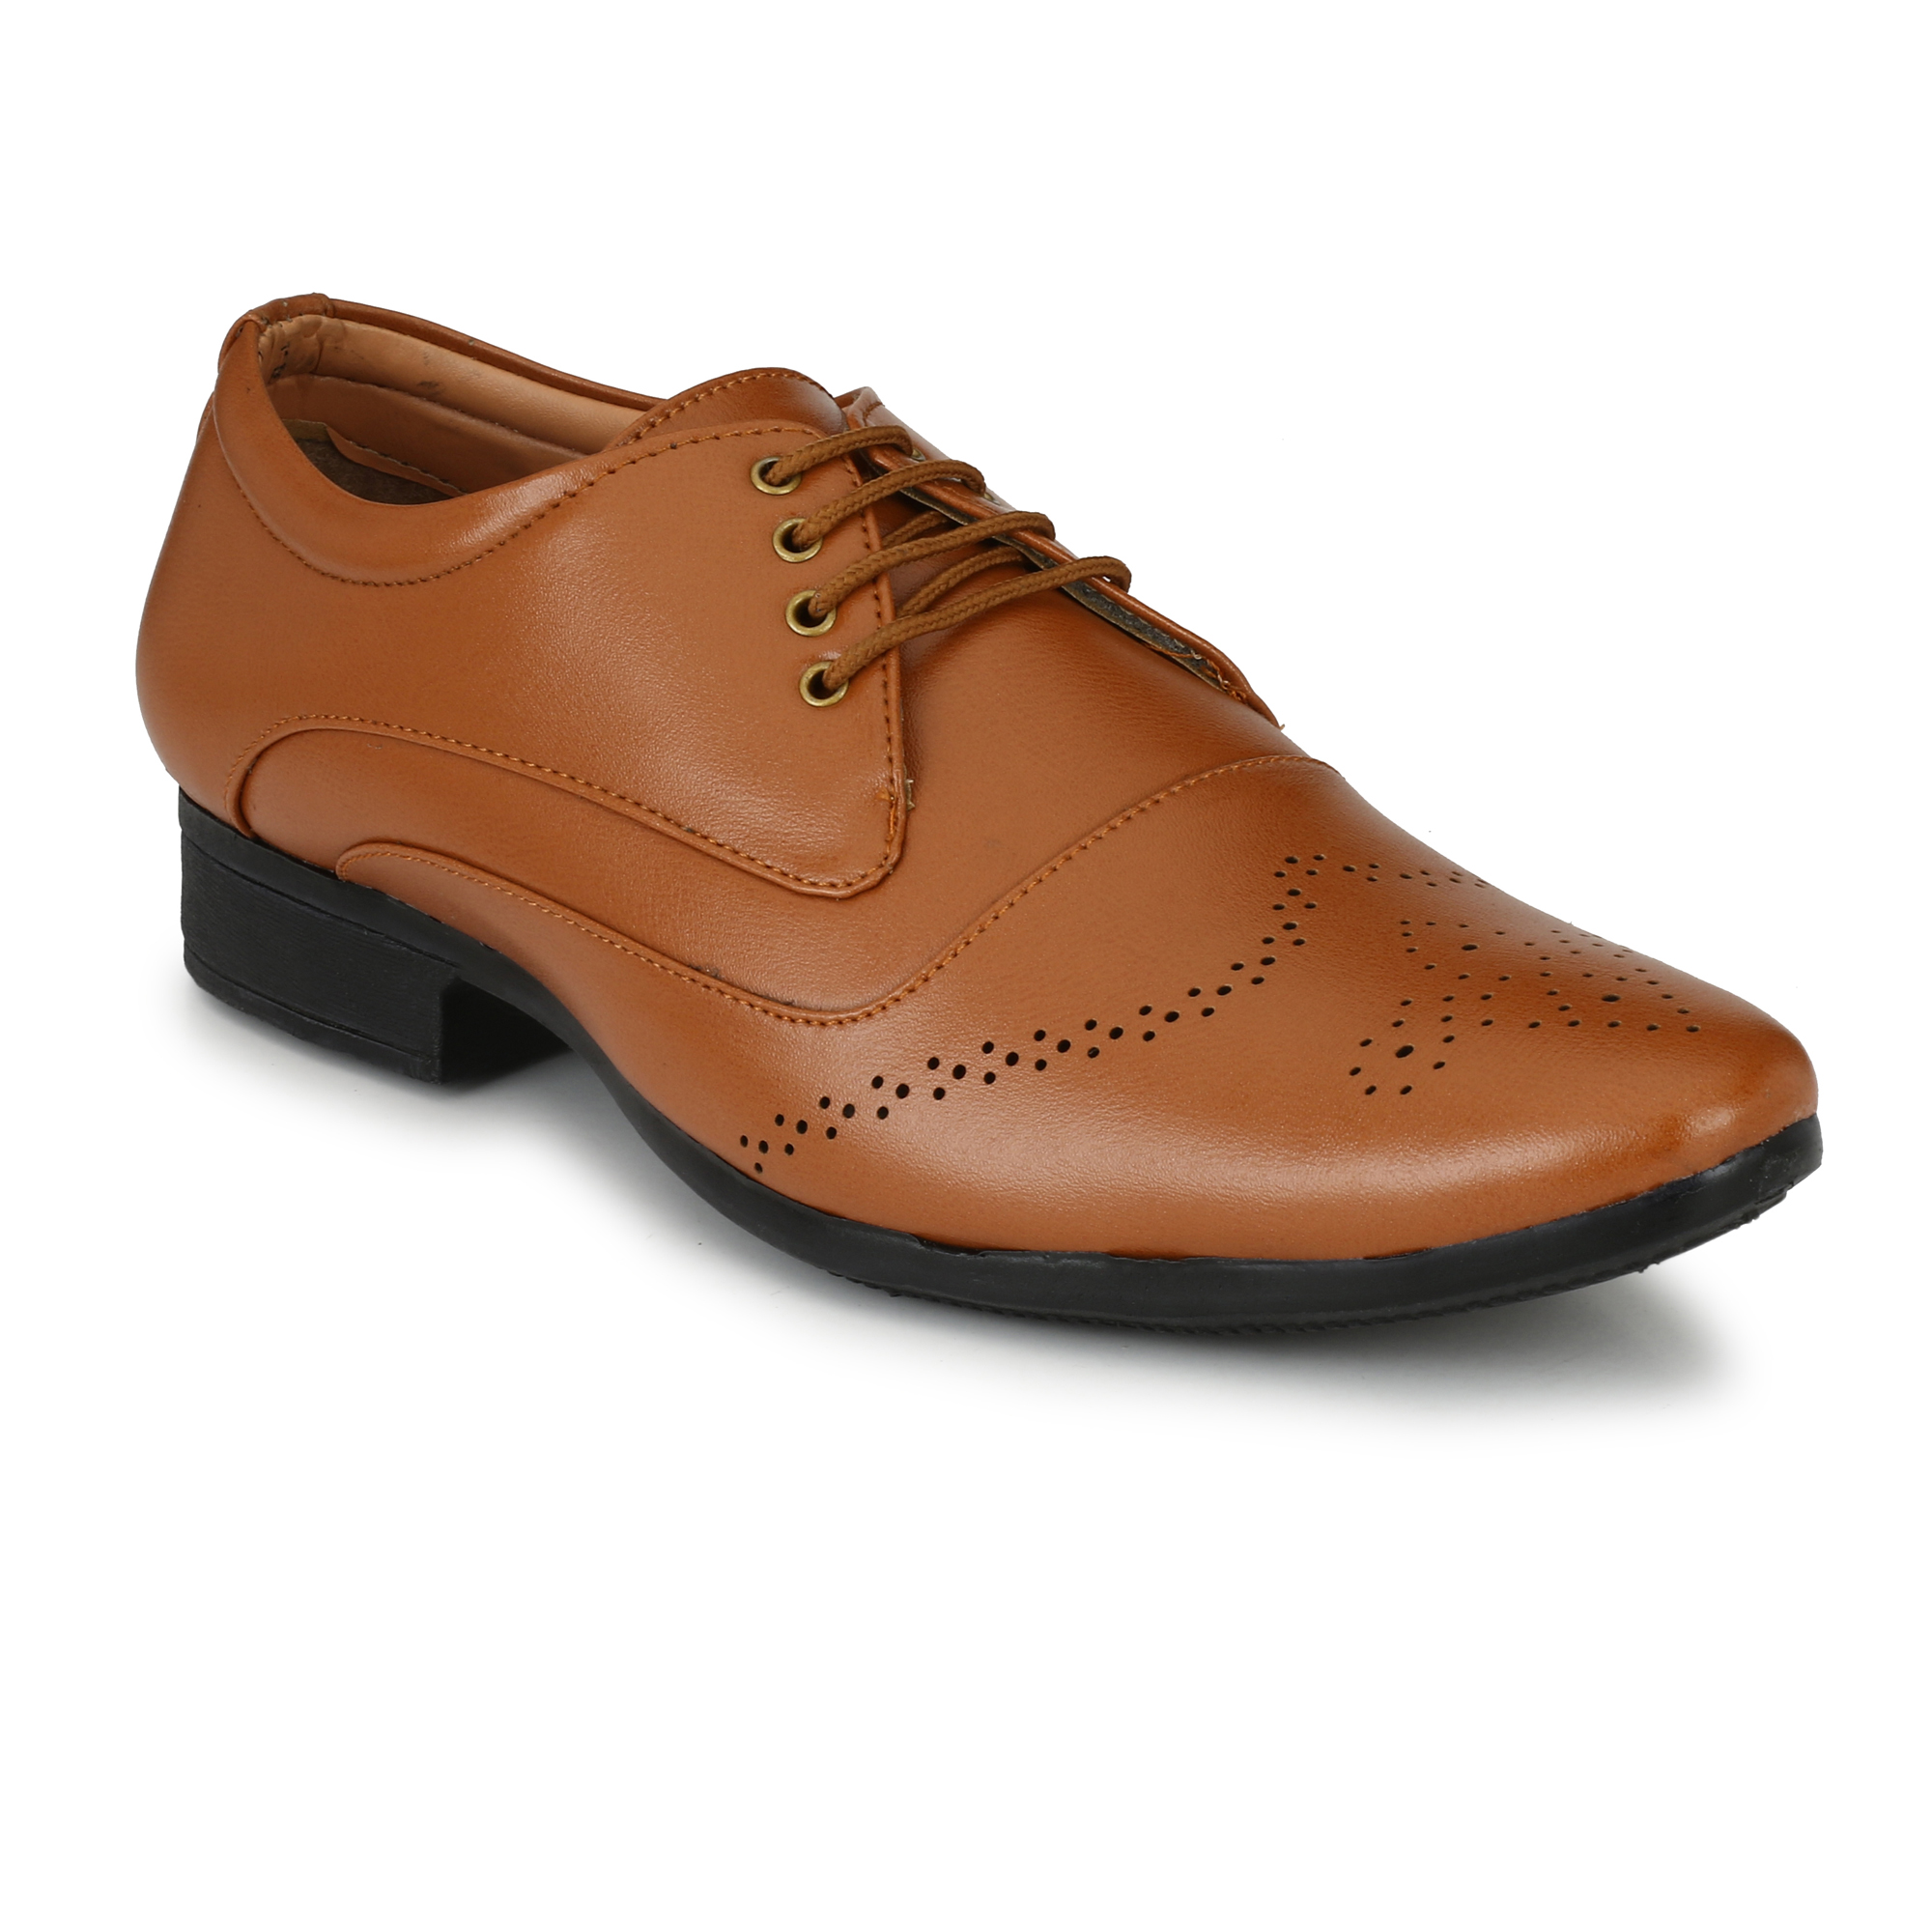 Biggfoot shoes 043